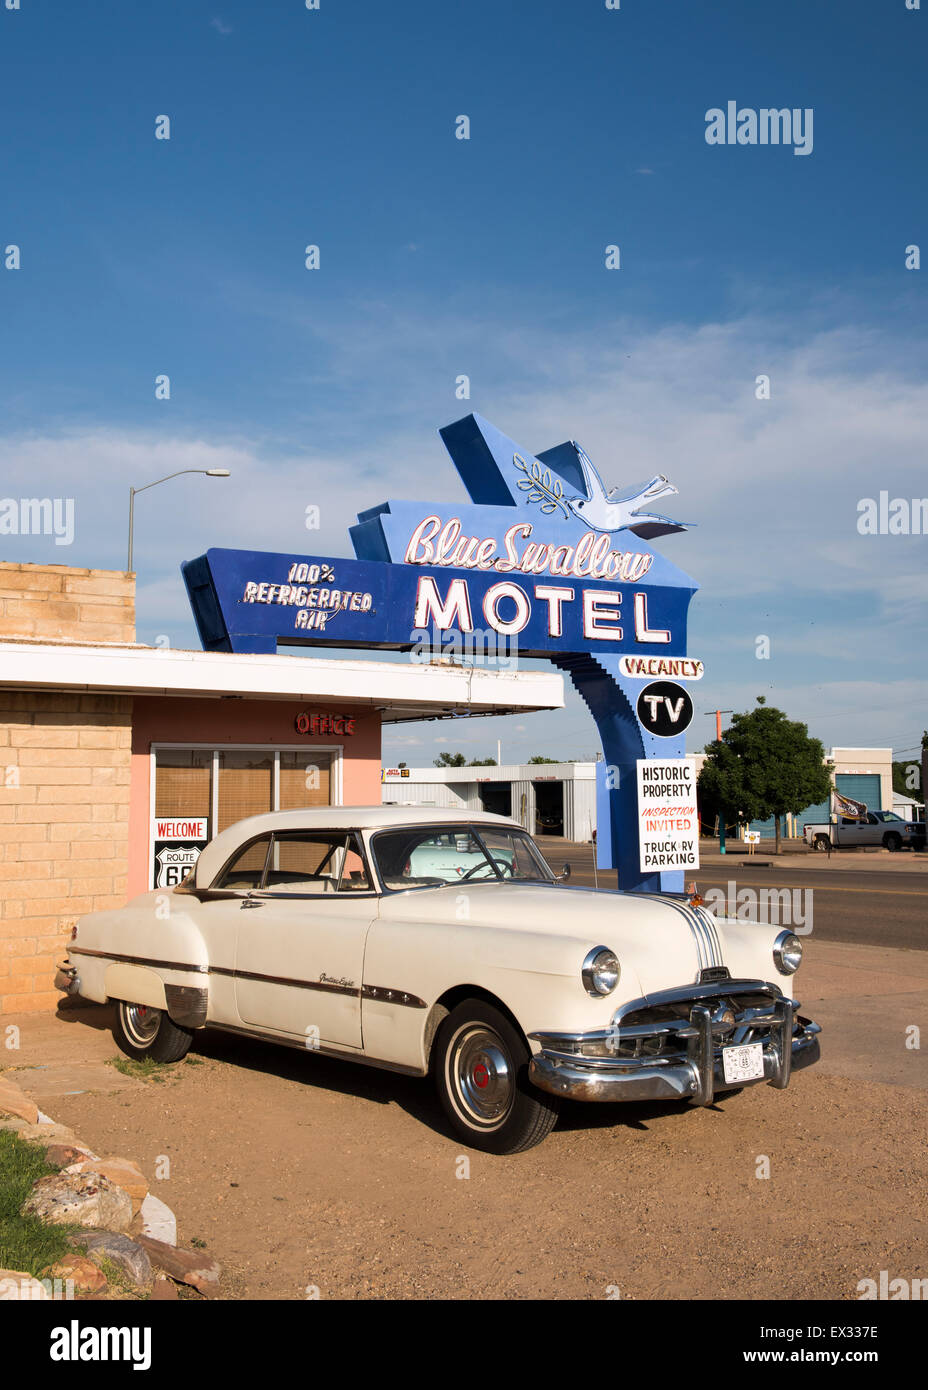 Blue Swallow Motel in Tucumcari, New Mexico with vintage Pontiac Eight car - Stock Image